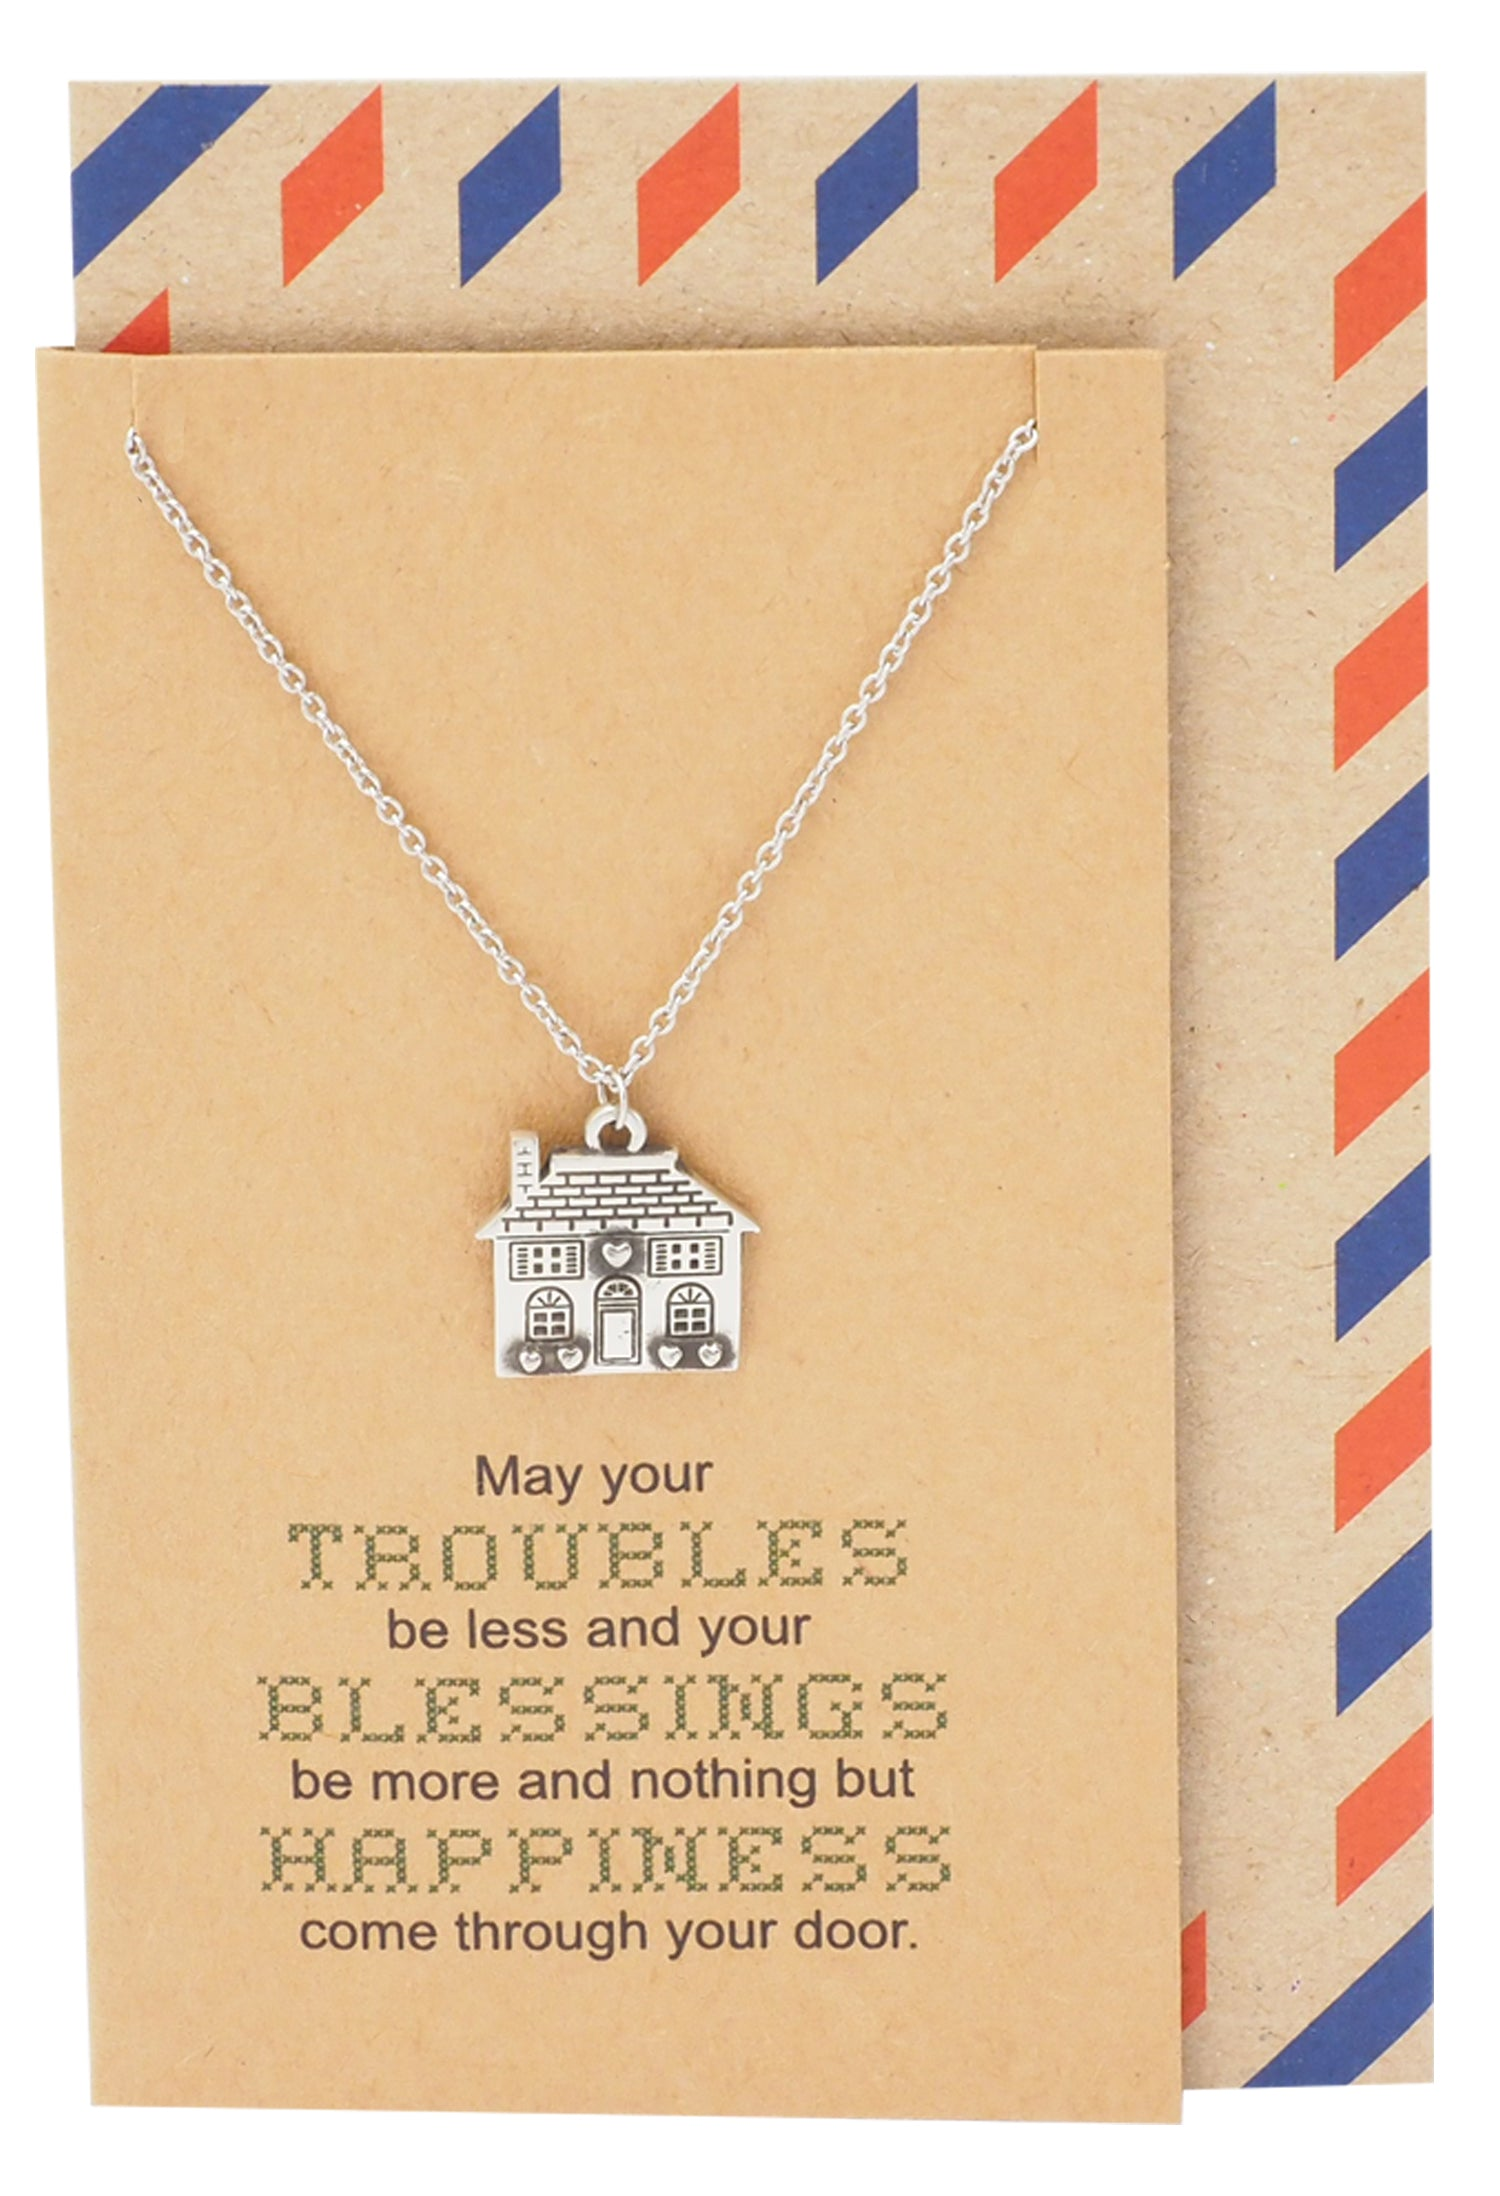 Lorelai Happiness and Blessings Family Necklace with House Pendant for Women